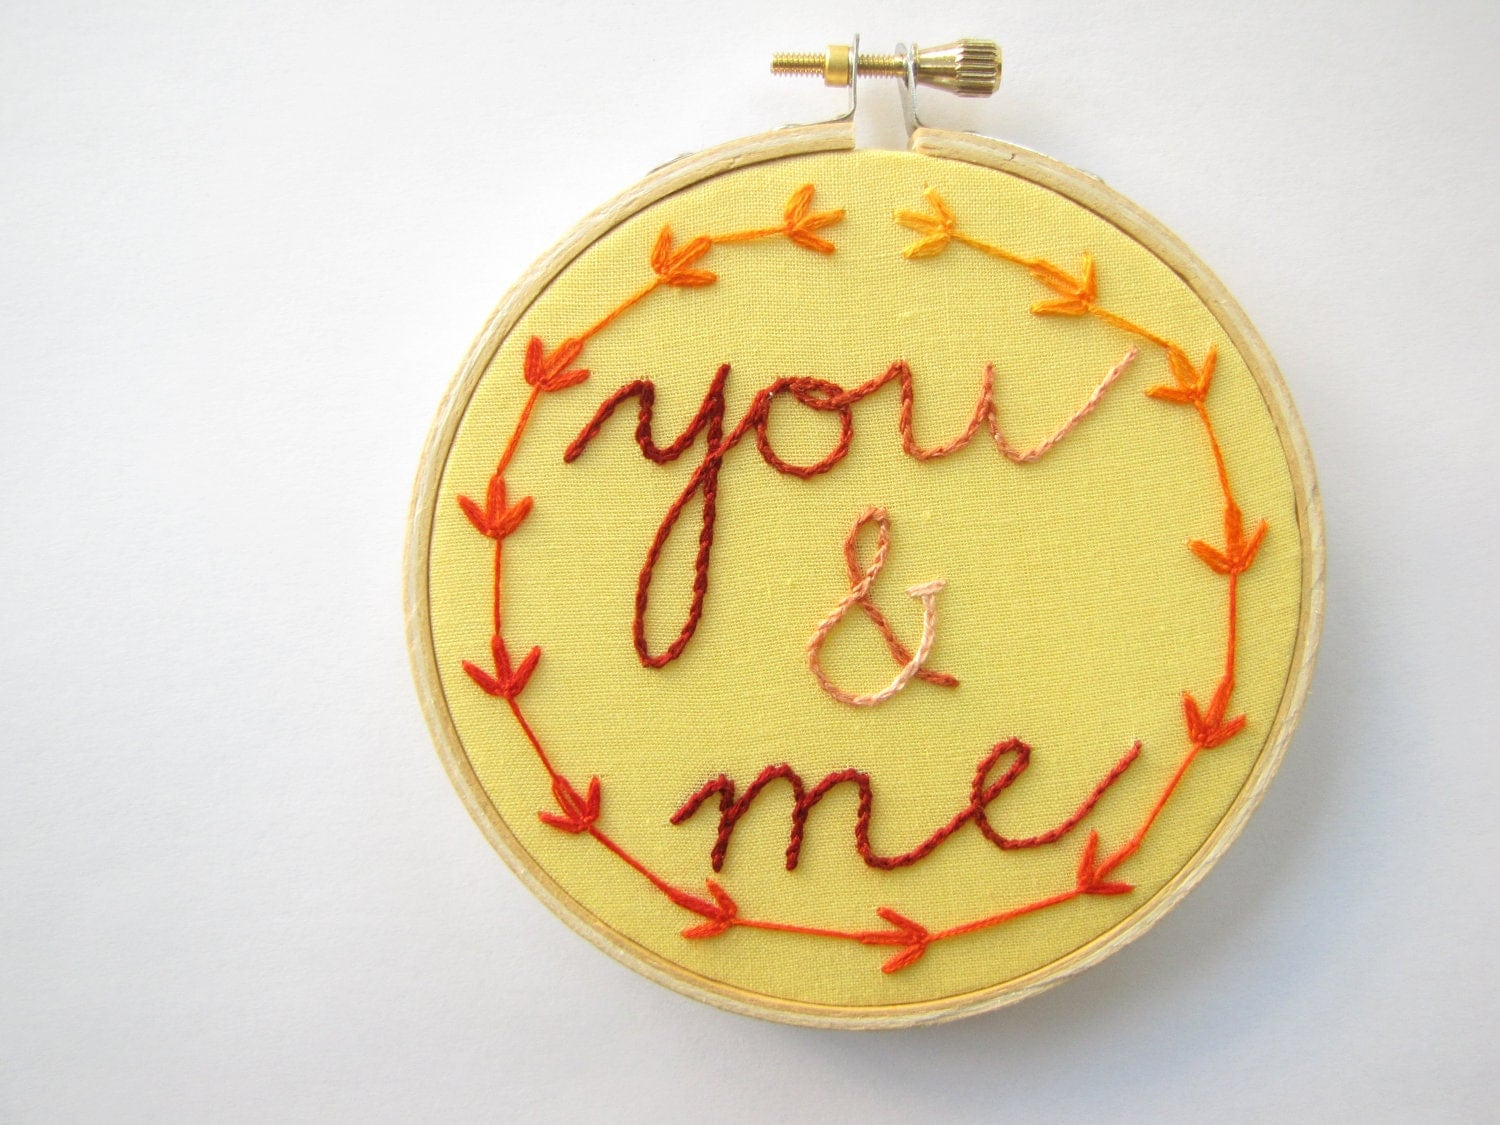 Embroidery Hoop Wall Art - You and Me with fall maple leaf garland - golden yellow and pumpkin orange